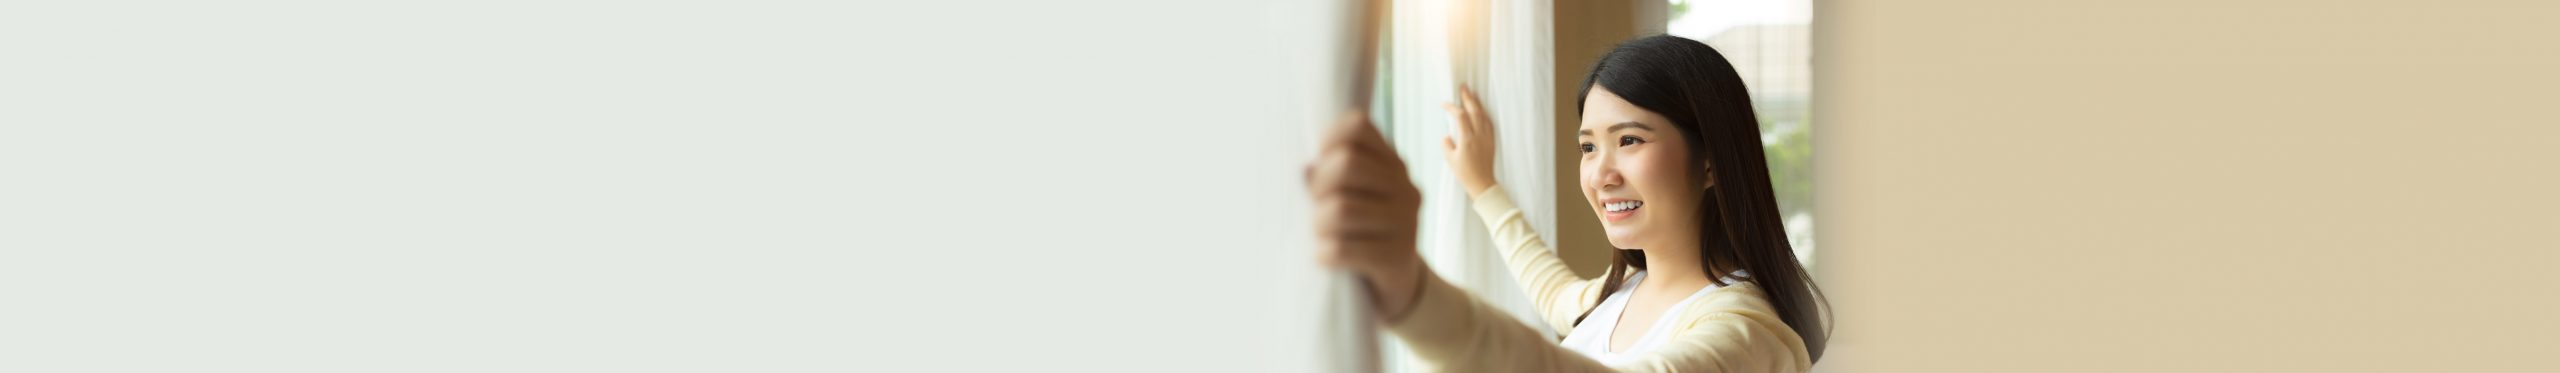 woman happily looking out window